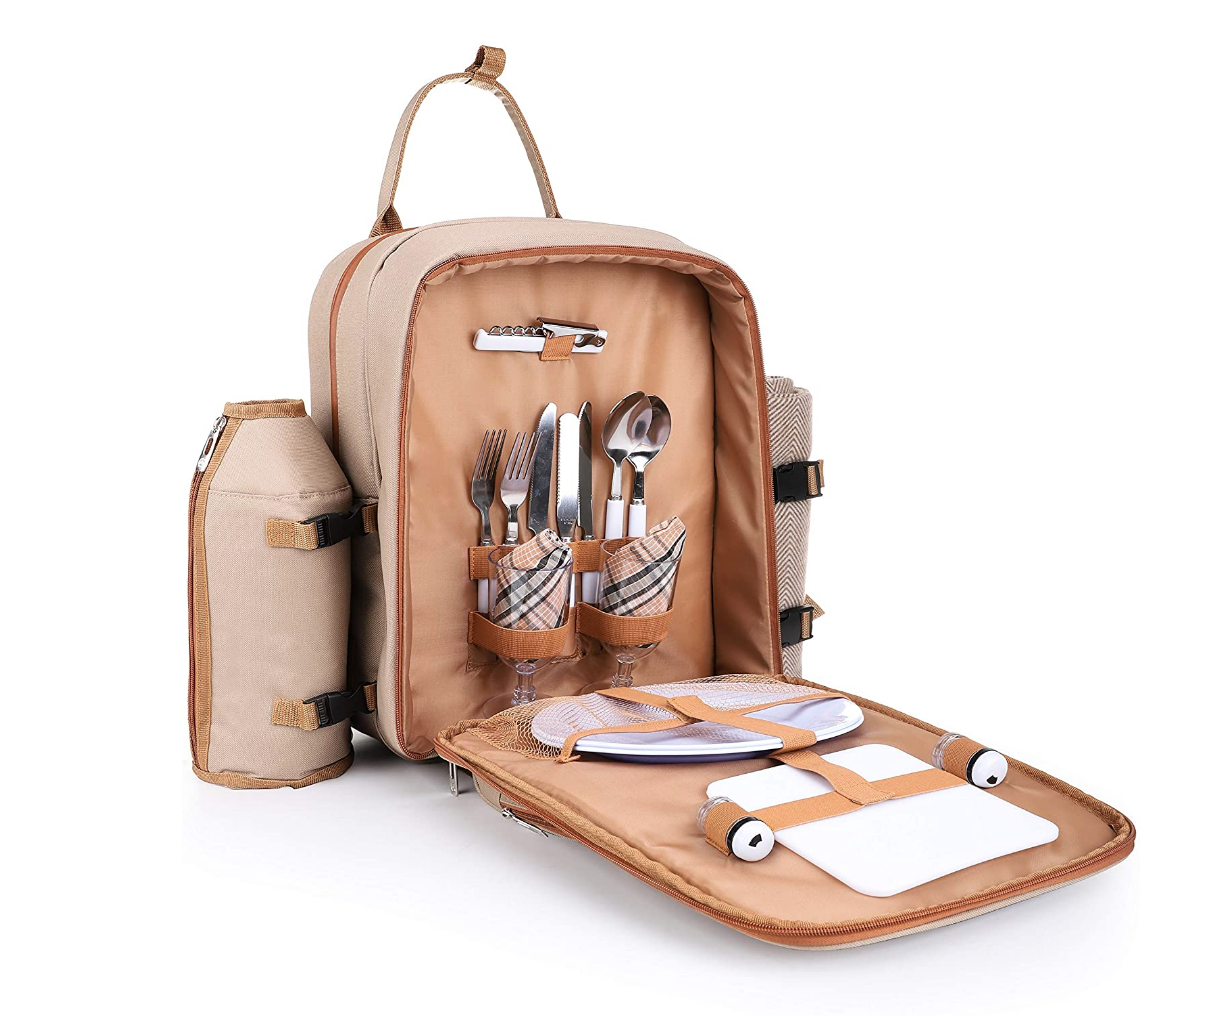 brown picnic basket backpack on table